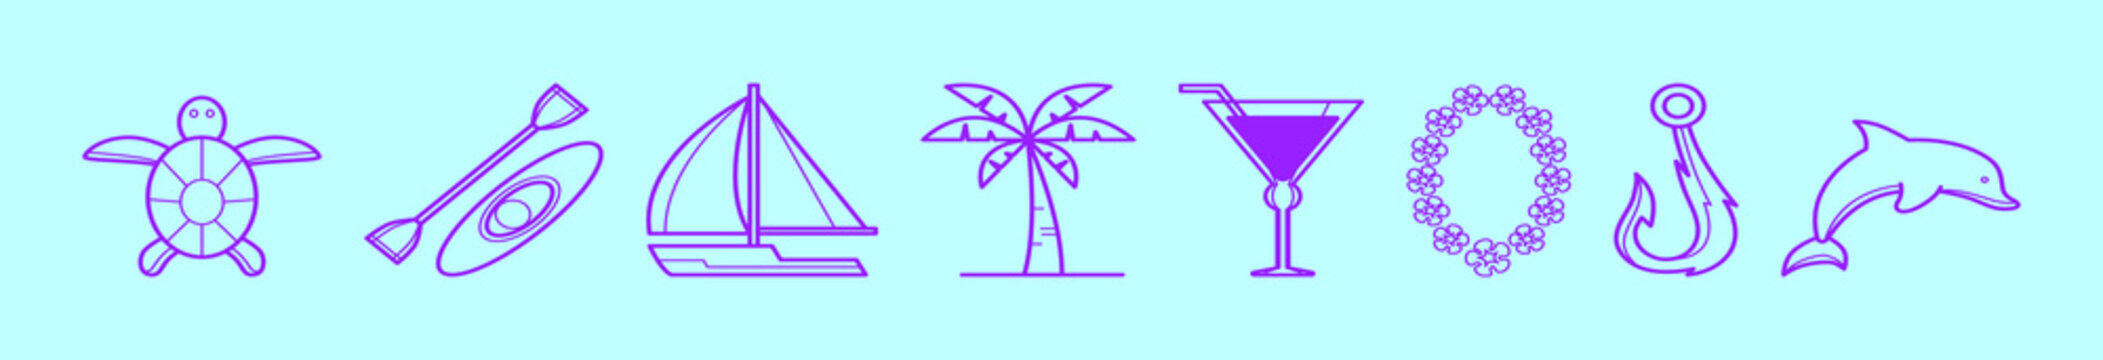 set of tropical island cartoon icon design template with various models. vector illustration isolated on blue background